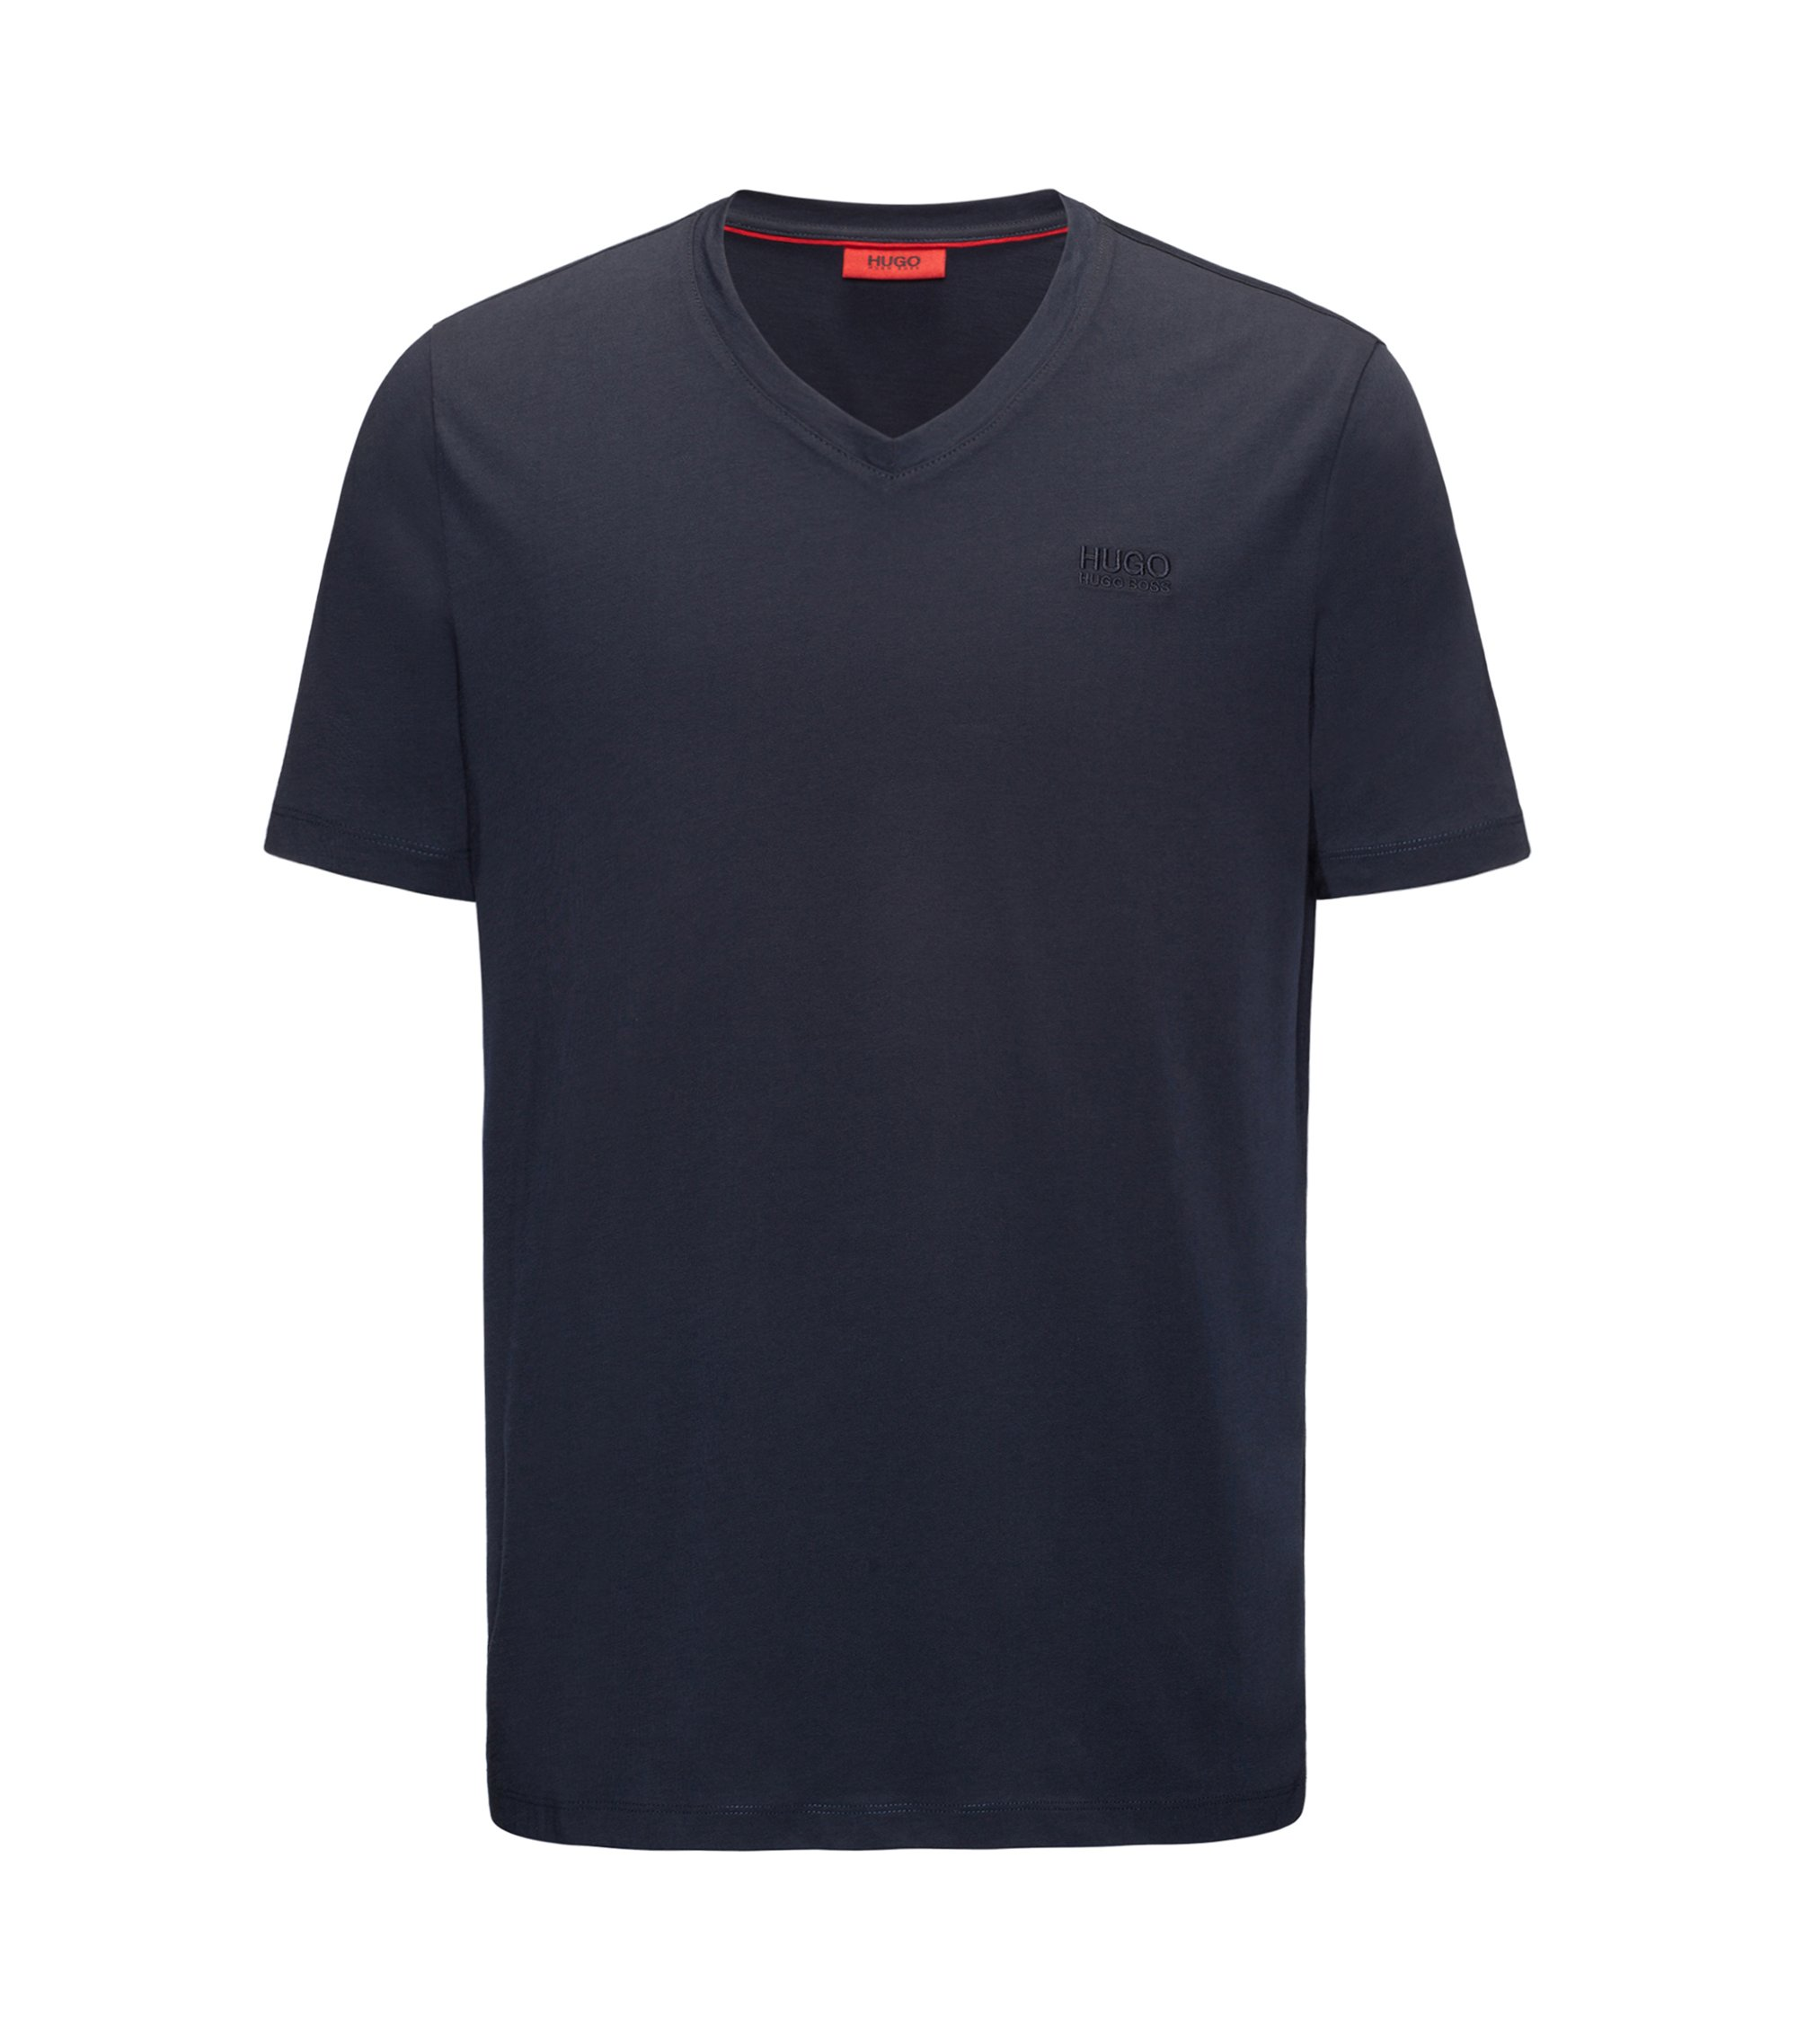 T-shirt regular fit con scollo a V in jersey di cotone con logo stampato, Blu scuro